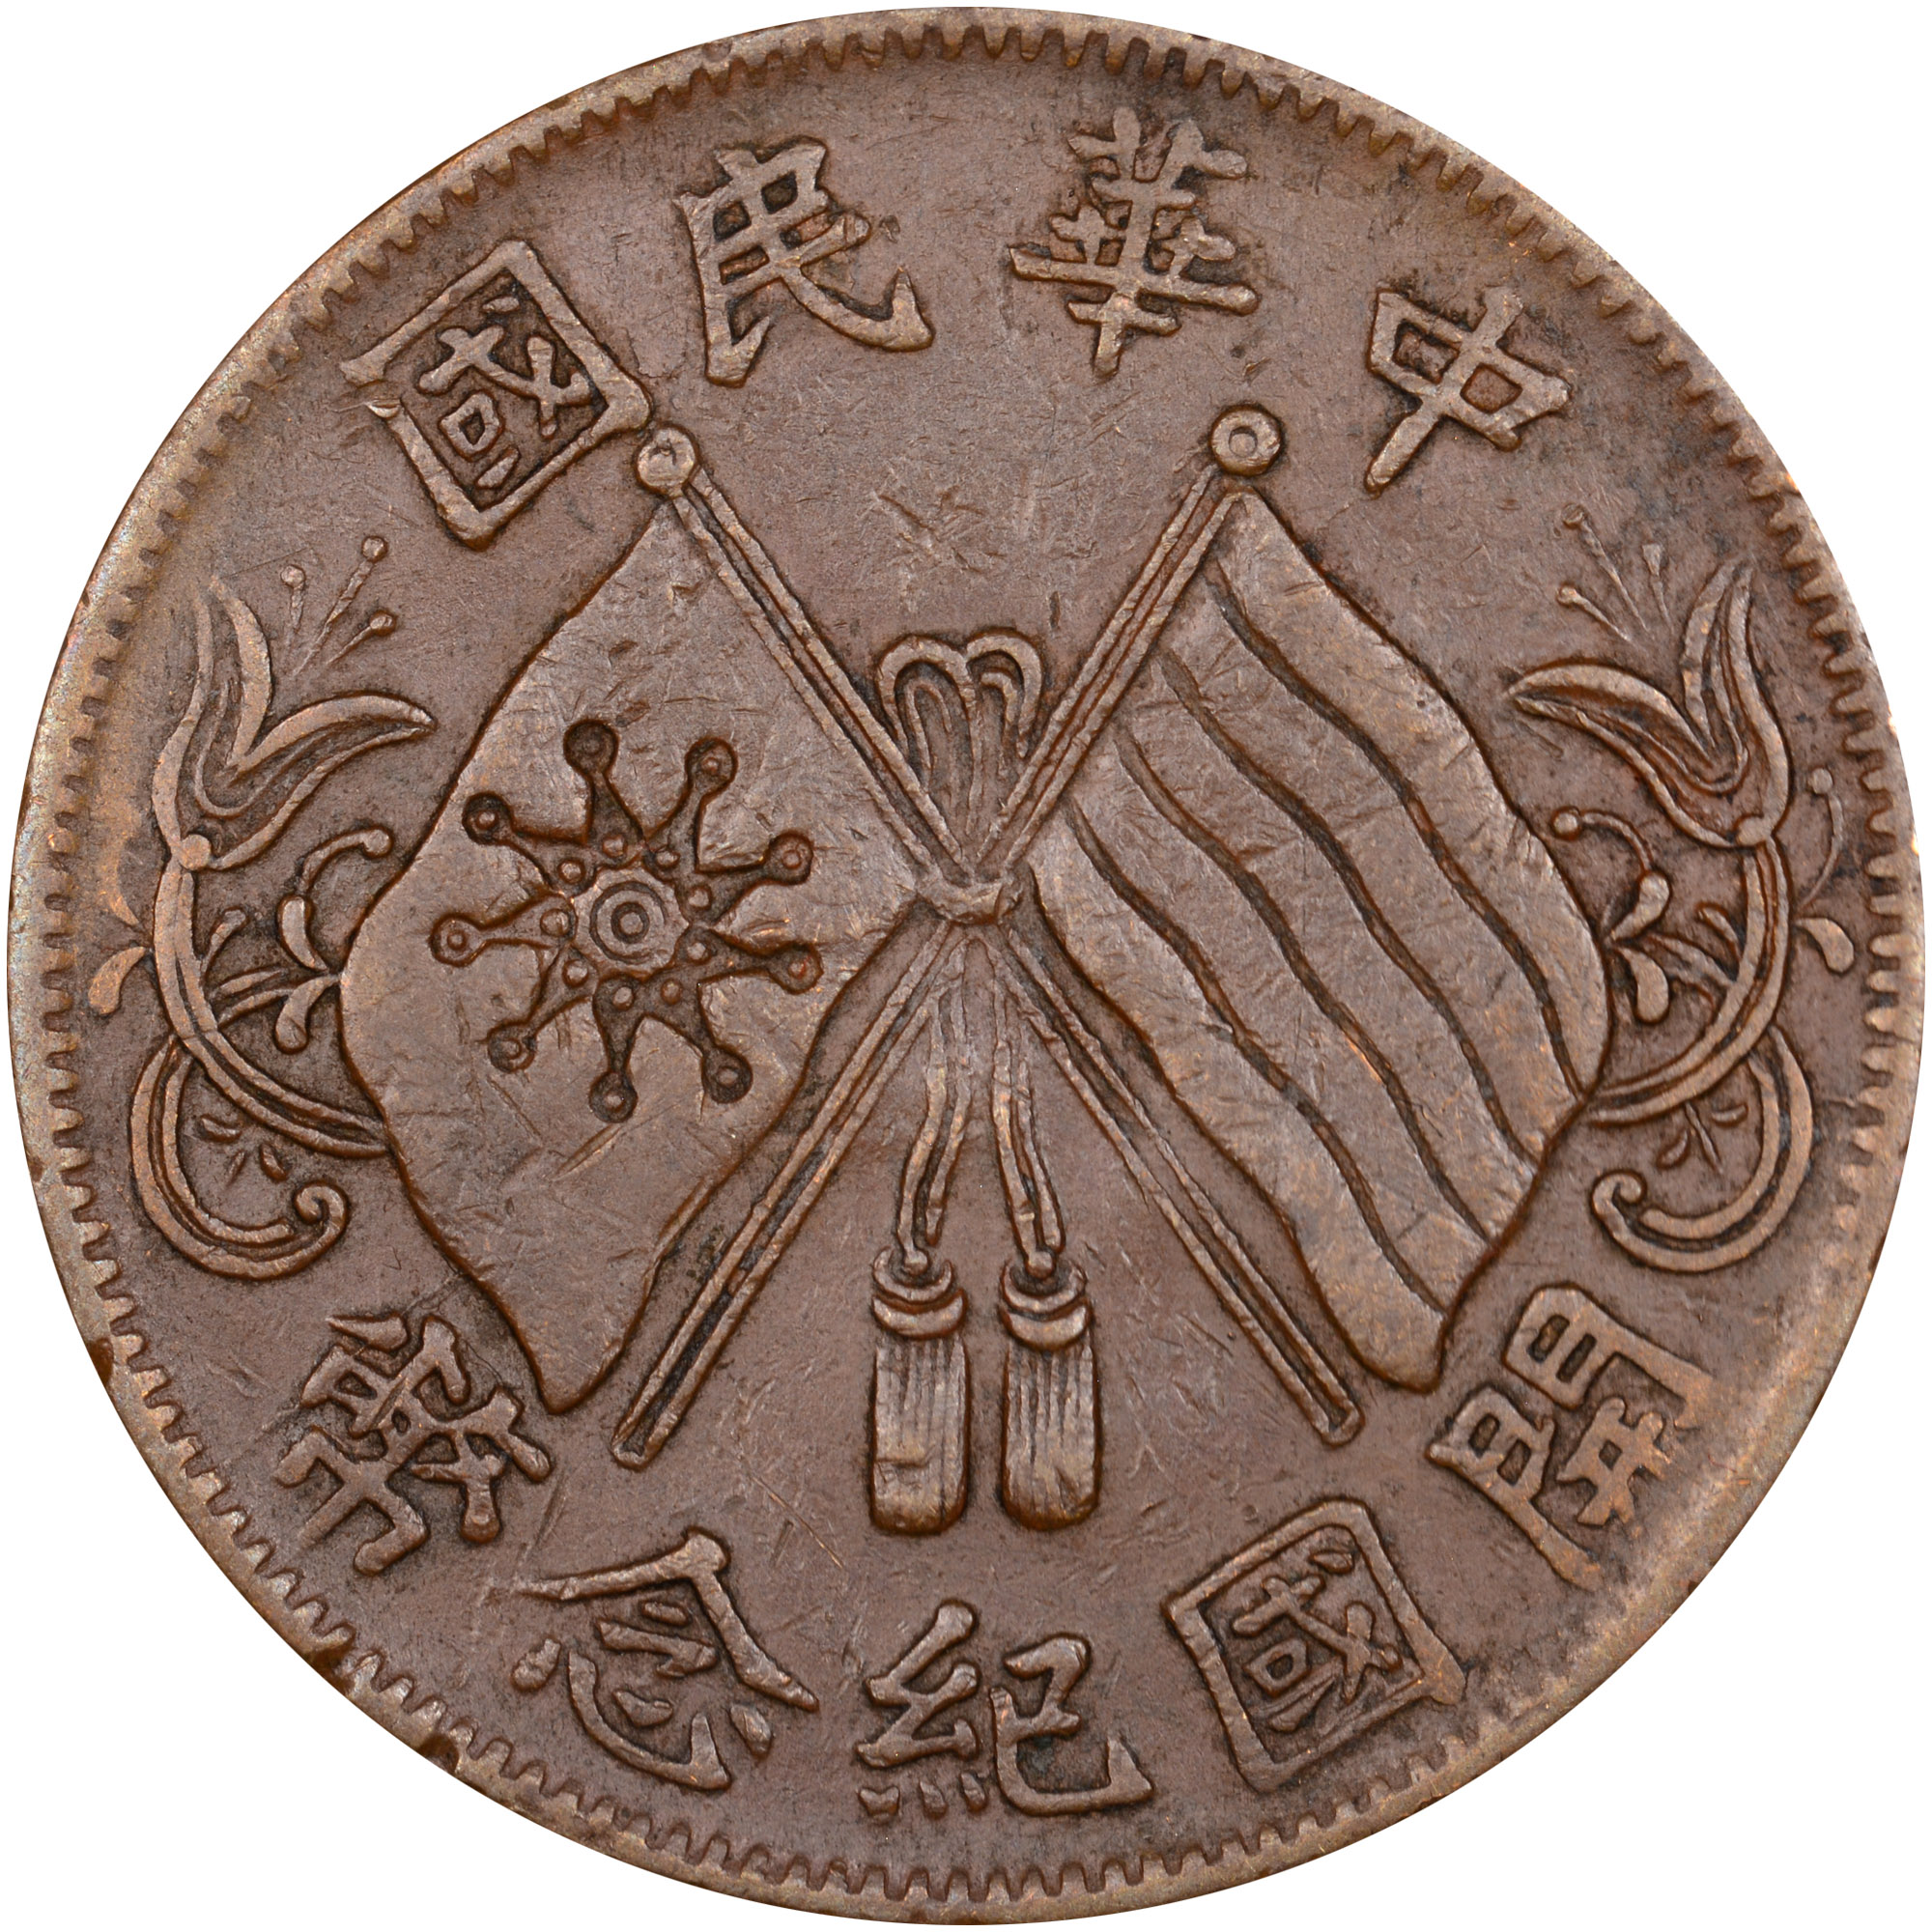 CHINA, REPUBLIC PERIOD (1912-1949) 10 Cash obverse